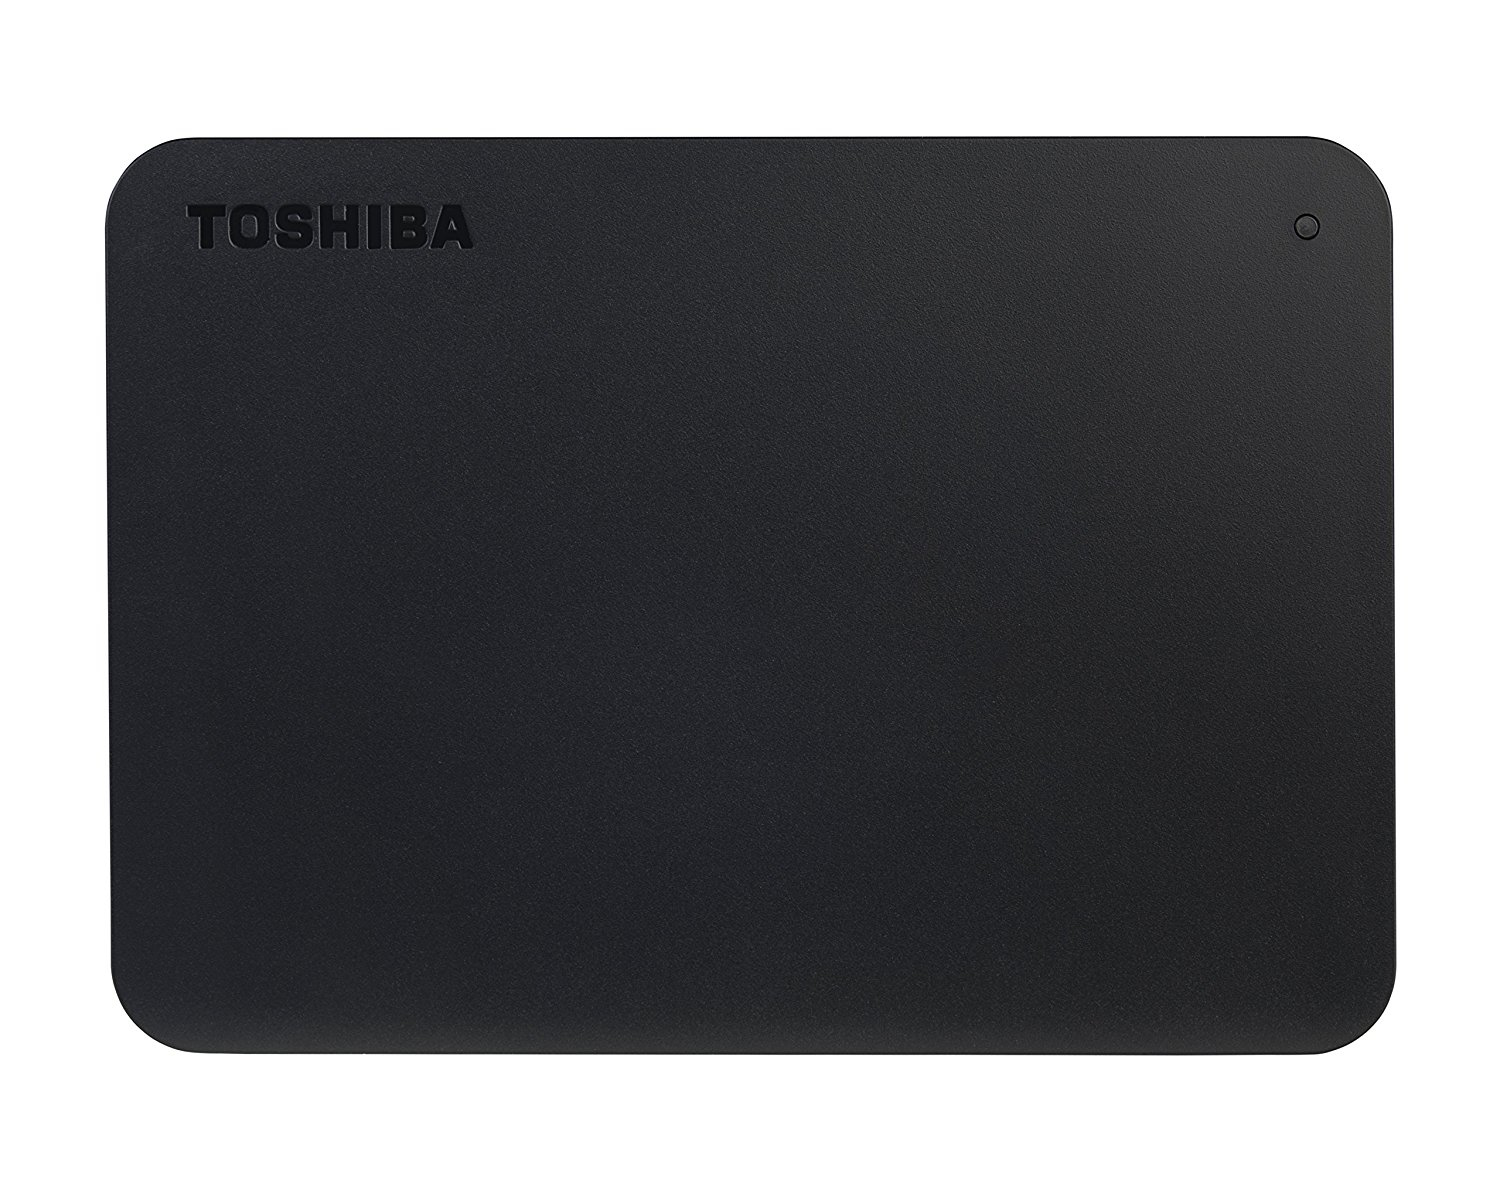 TOSHIBA HDTB405EK3AA 500GB BLACK EXTERNAL HARD DRIVE